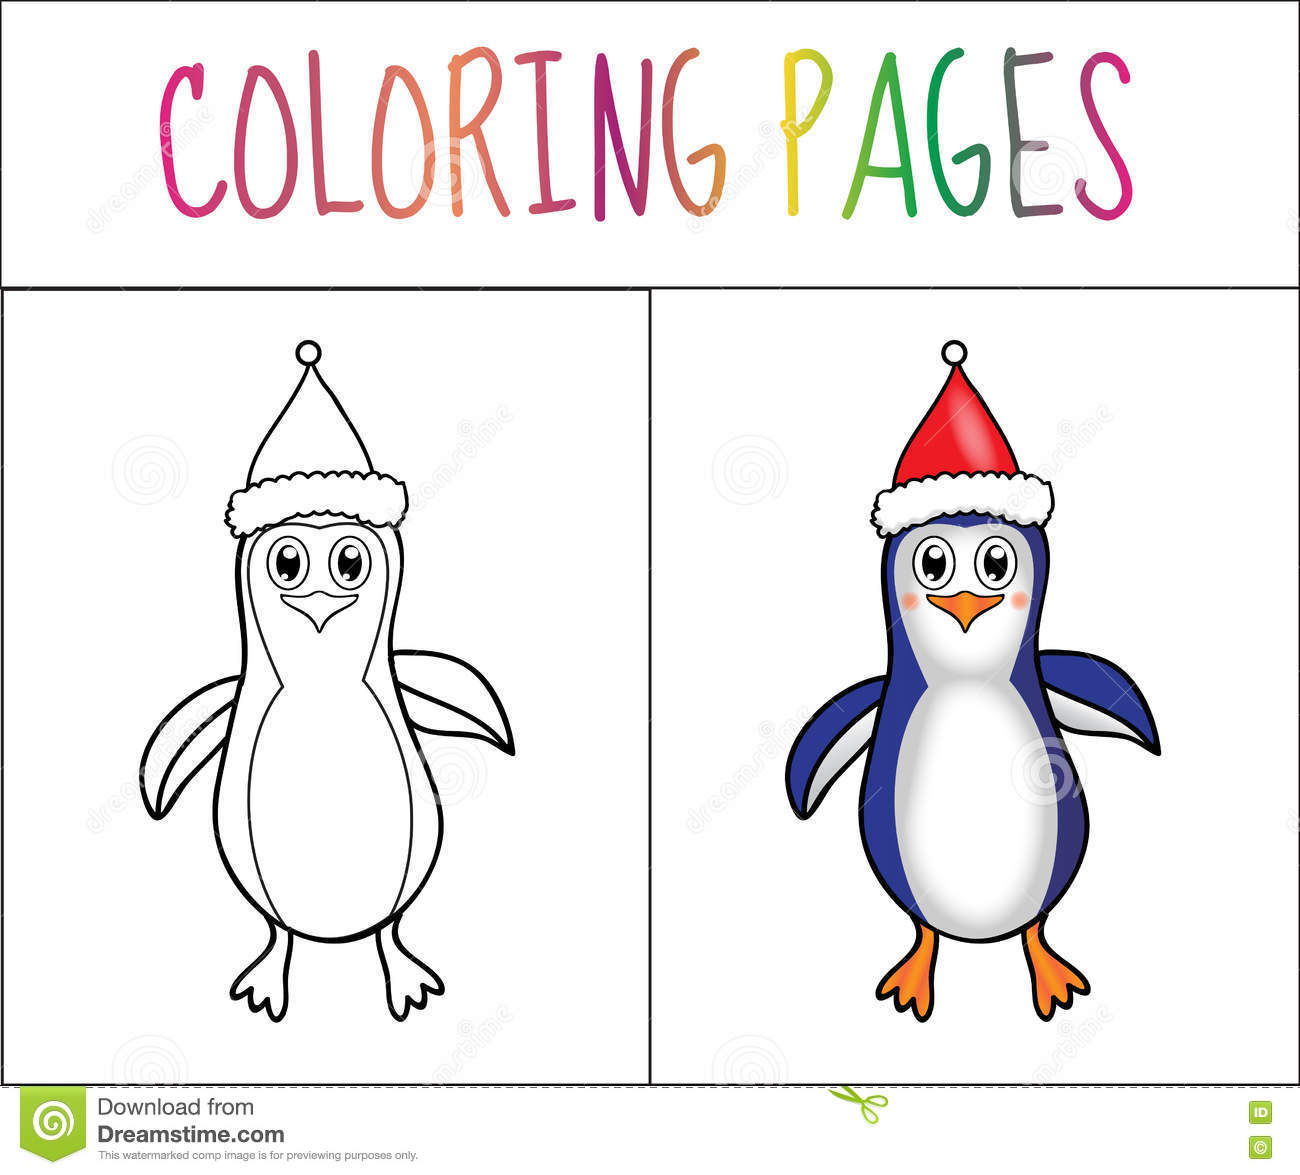 Top 25 Free Christmas Coloring Pages | Christmas coloring pages ... | 1175x1300